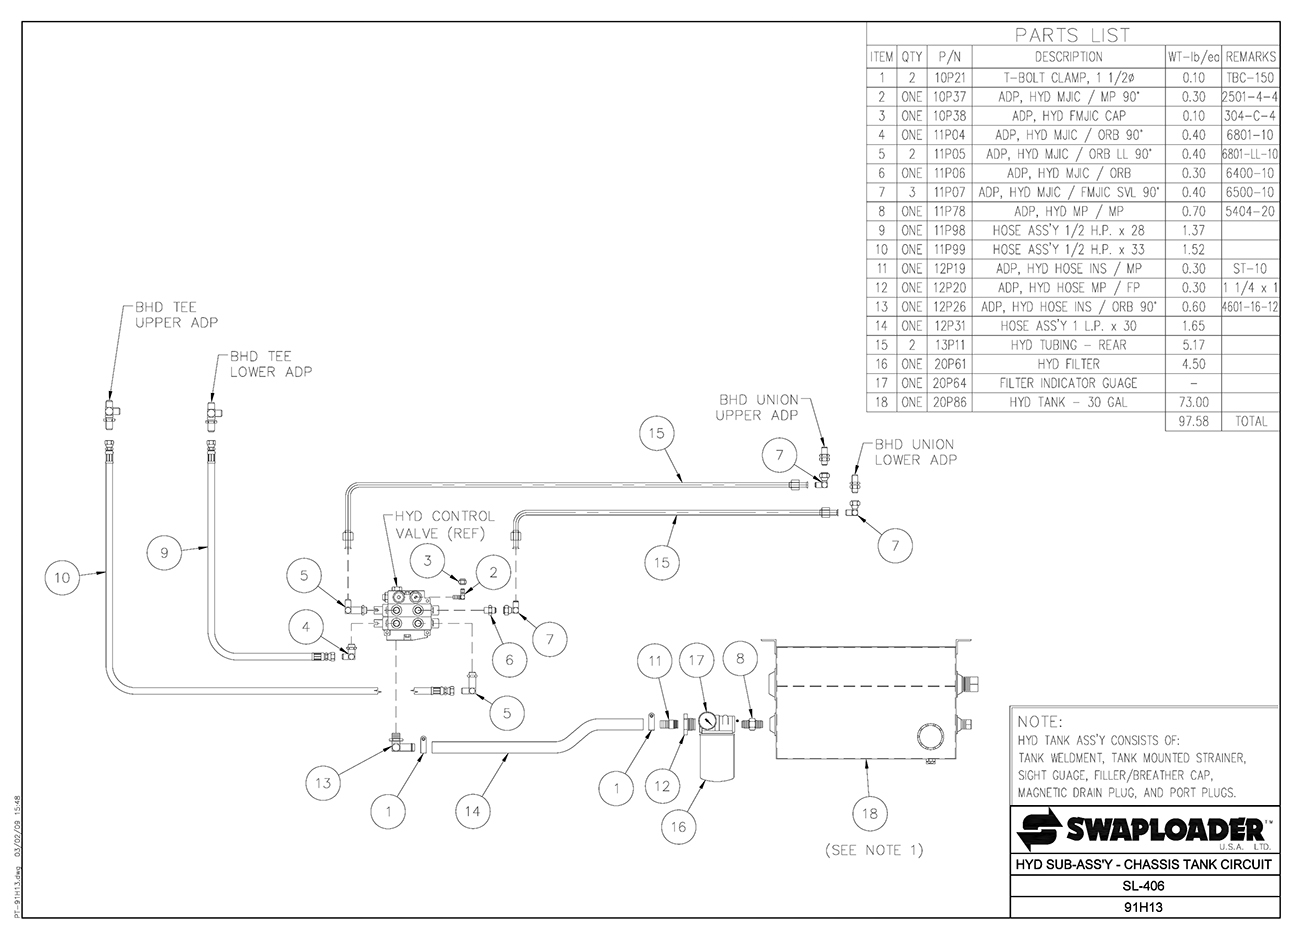 Swaploader Series 400 Sl 406 Hooklift Diagrams Waltco Wiring Diagram Hydraulic Sub Assembly Chassis Tank Circuit